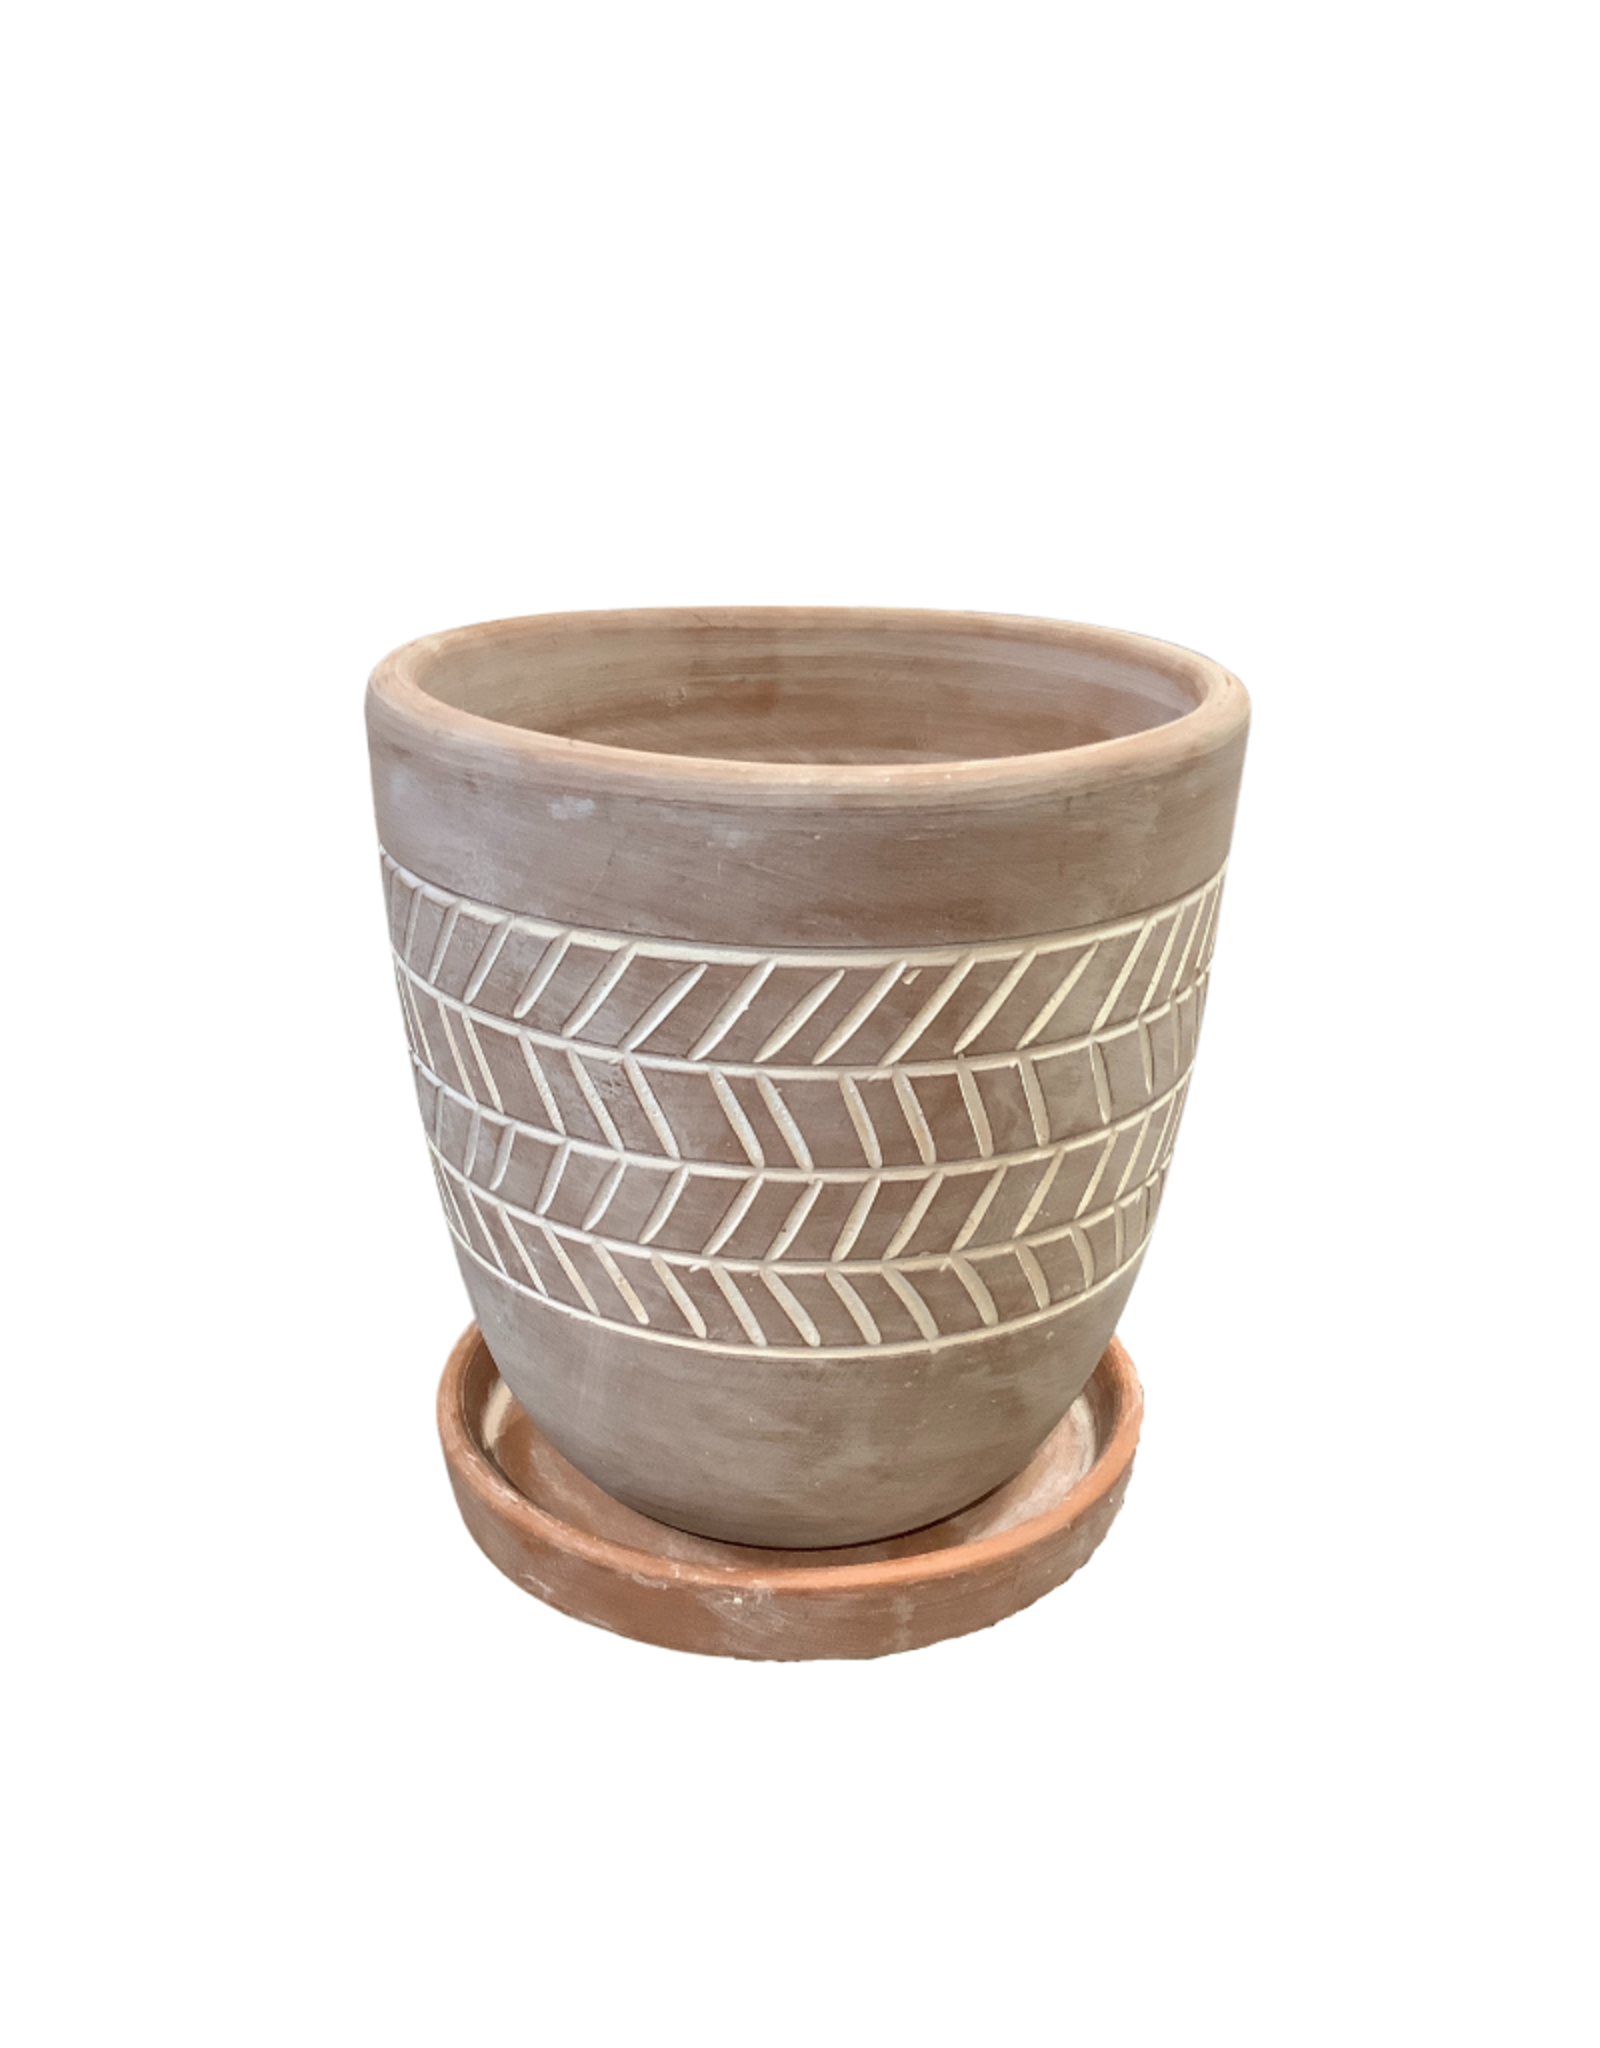 Herringbone Etched Terracotta Planter (M)